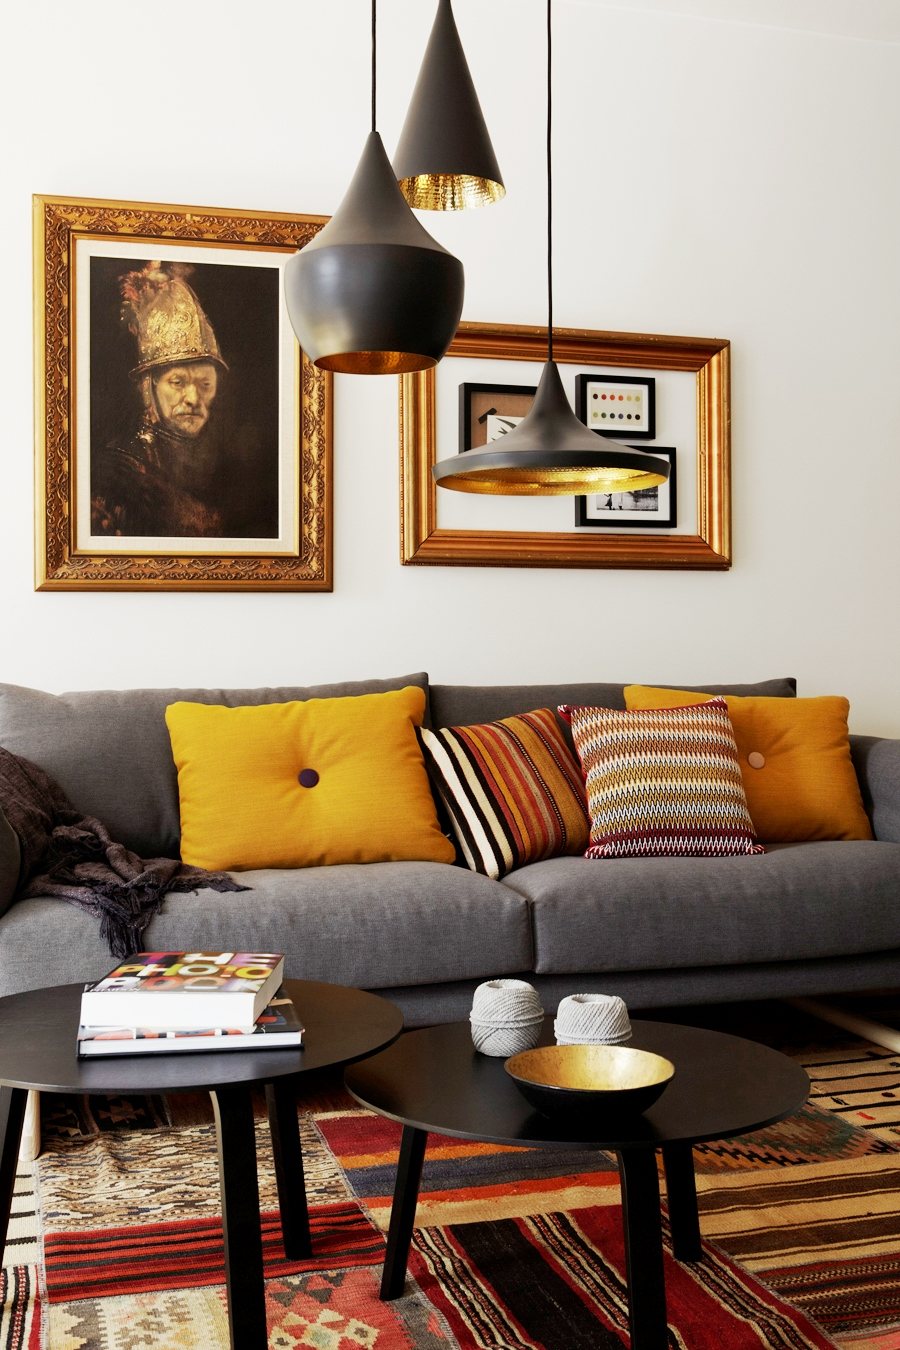 THIS OR THAT: LIVING ROOM LIGHTING!